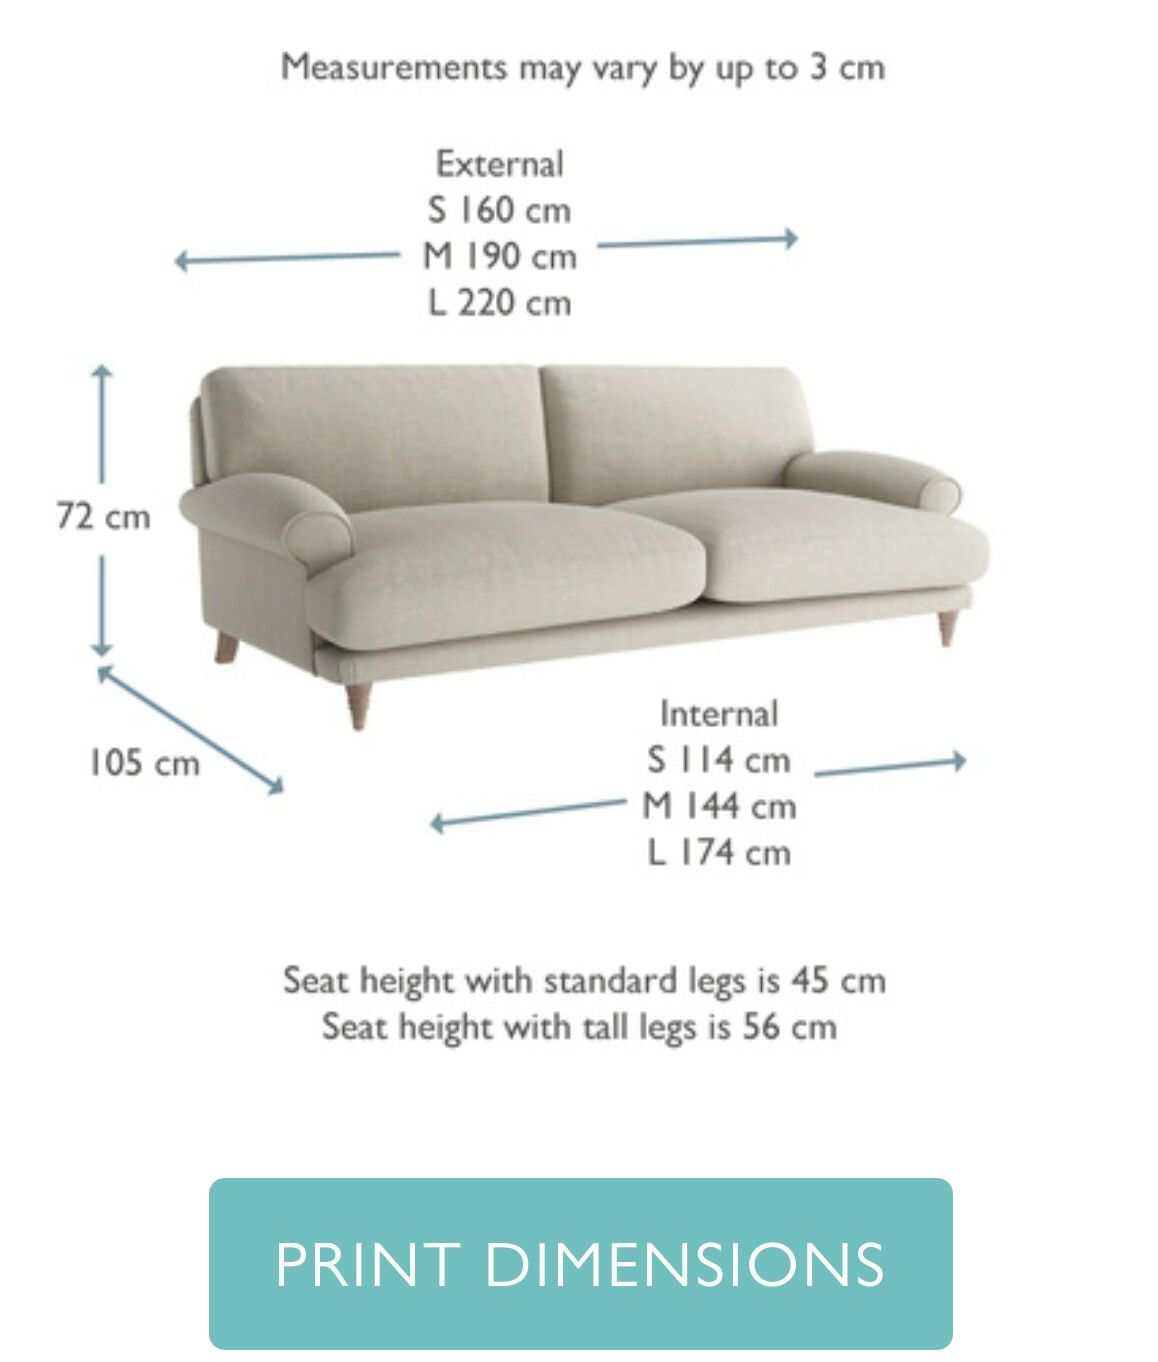 Pin By Superstar On Best Design Sofa Classic Sofa Fabric Sofa